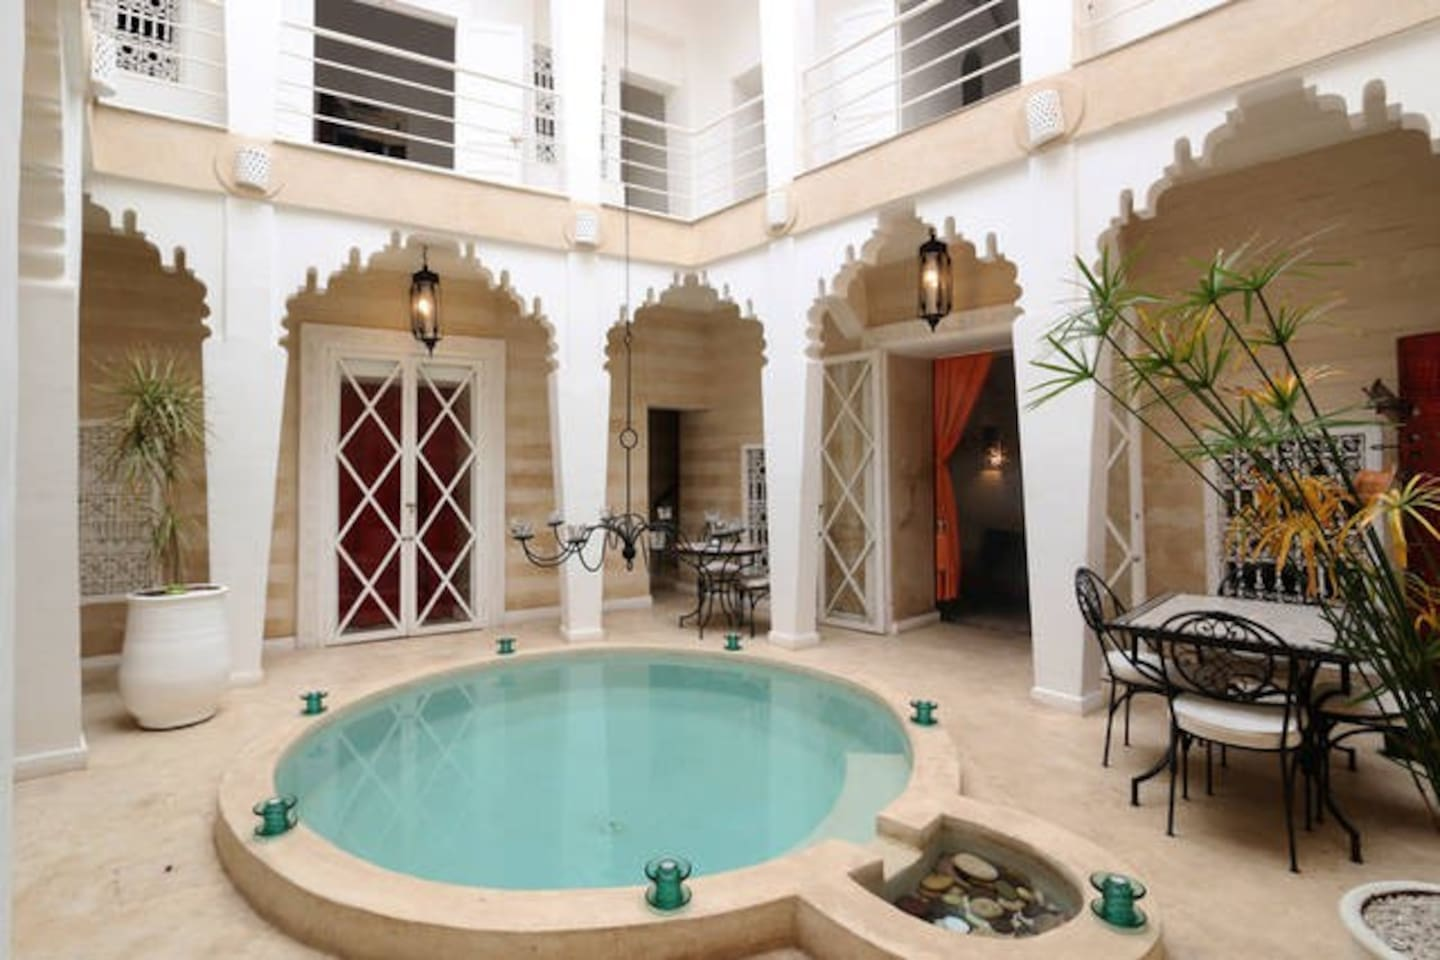 Riad Thalge in Medina - White Room